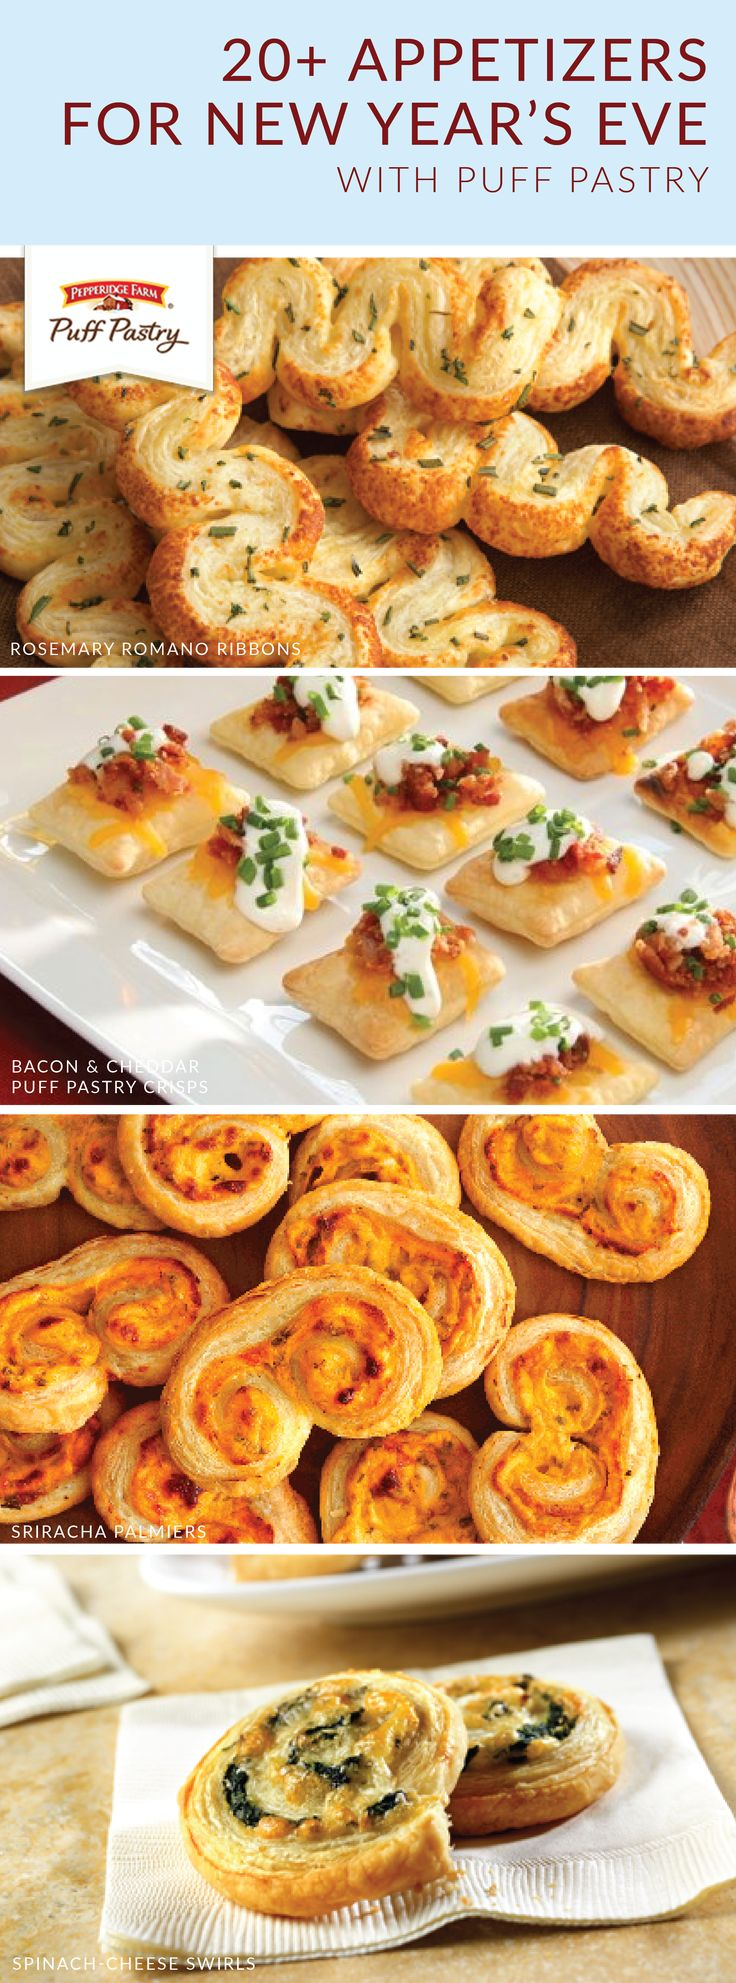 Our new year's resolution is to eat more Pepperidge Farm® Puff Pastry Sheets! These appetizer recipes are a delicious addition to your New Year's Eve celebration. Click here to learn how you can make crowd-favorite dishes like Dried Cherries, Pecans, and Rosemary Brie En Croute; Spinach, Crab, and Artichoke Mini Tarts; and Apple Pie Spirals with Salted Caramel Sauce.